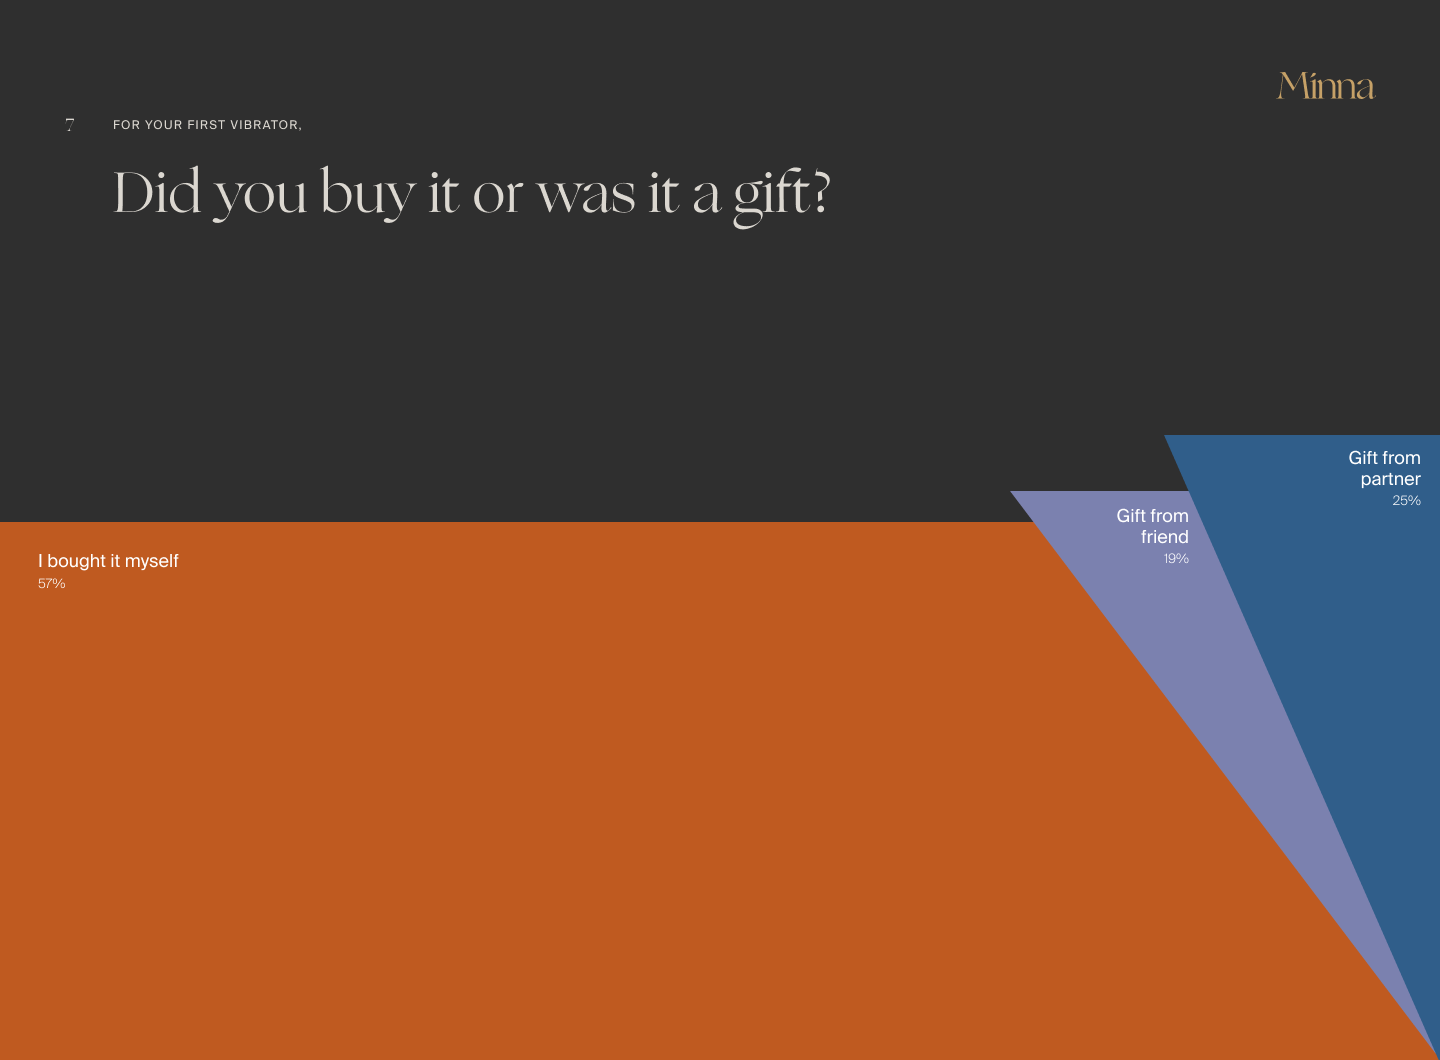 Did you buy it or was it a gift?